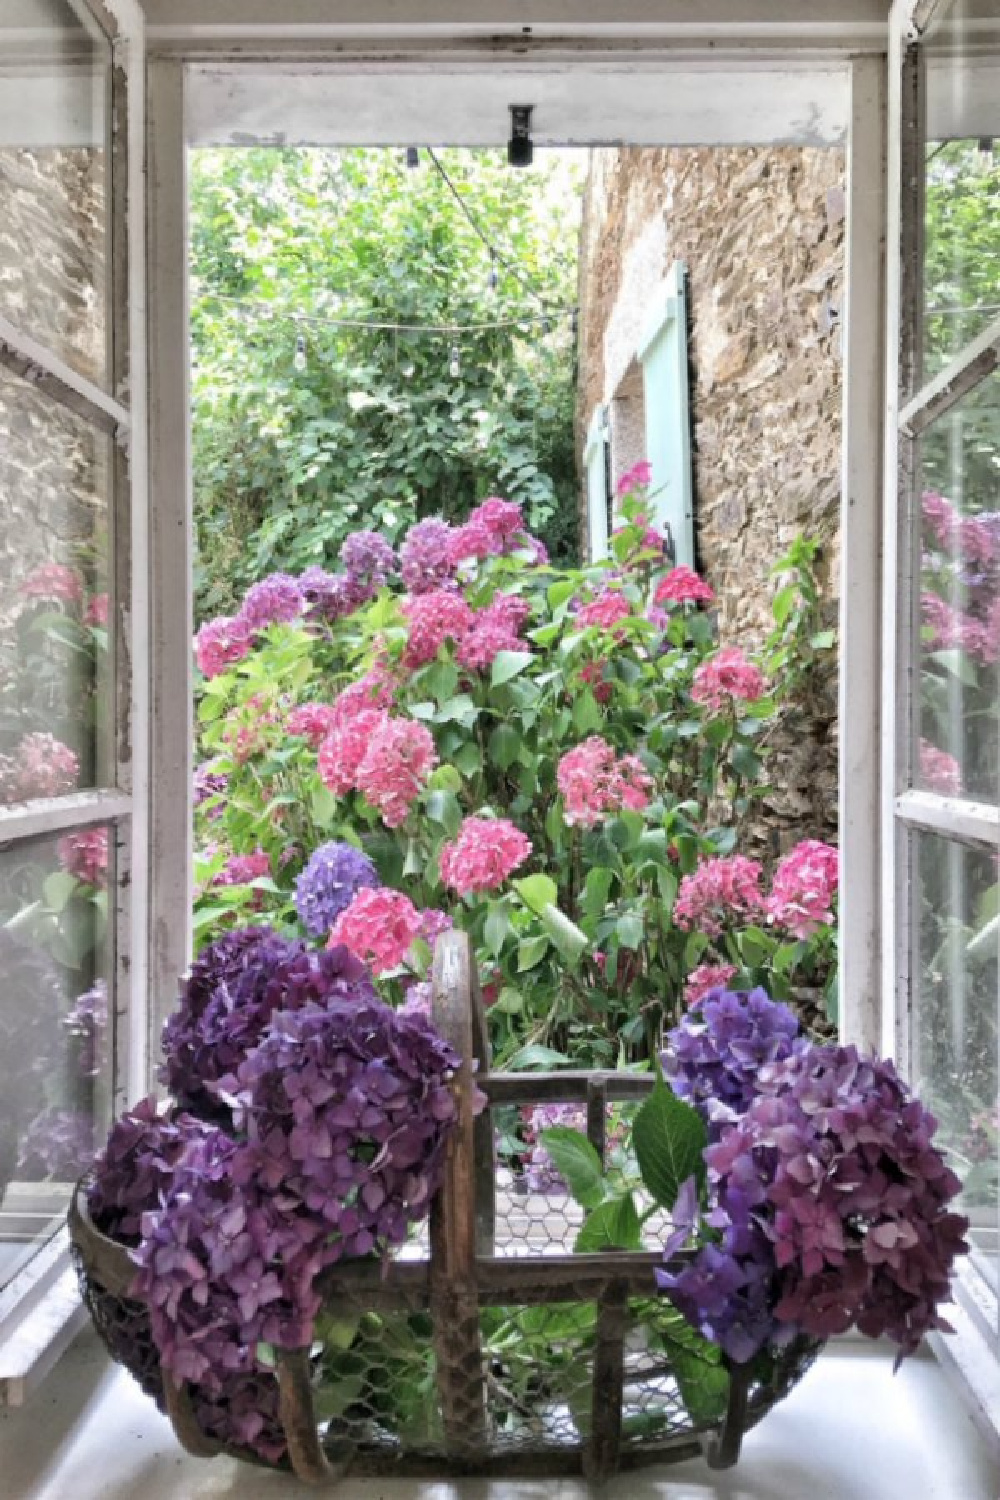 French oysterbasket filled with hydrangea in a charming kitchen window.French farmhouse design inspiration with an interview with Vivi et Margot. Come be inspired on Hello Lovely and learn the paint colors used in these beautiful authentic French country interiors. #oysterbasket #frenchkitchen #frenchfarmhouse  #frenchcountry #vivietmargot #rusticdecor #frenchhome #authentic #frenchmarket #summerliving #europeanfarmhouse